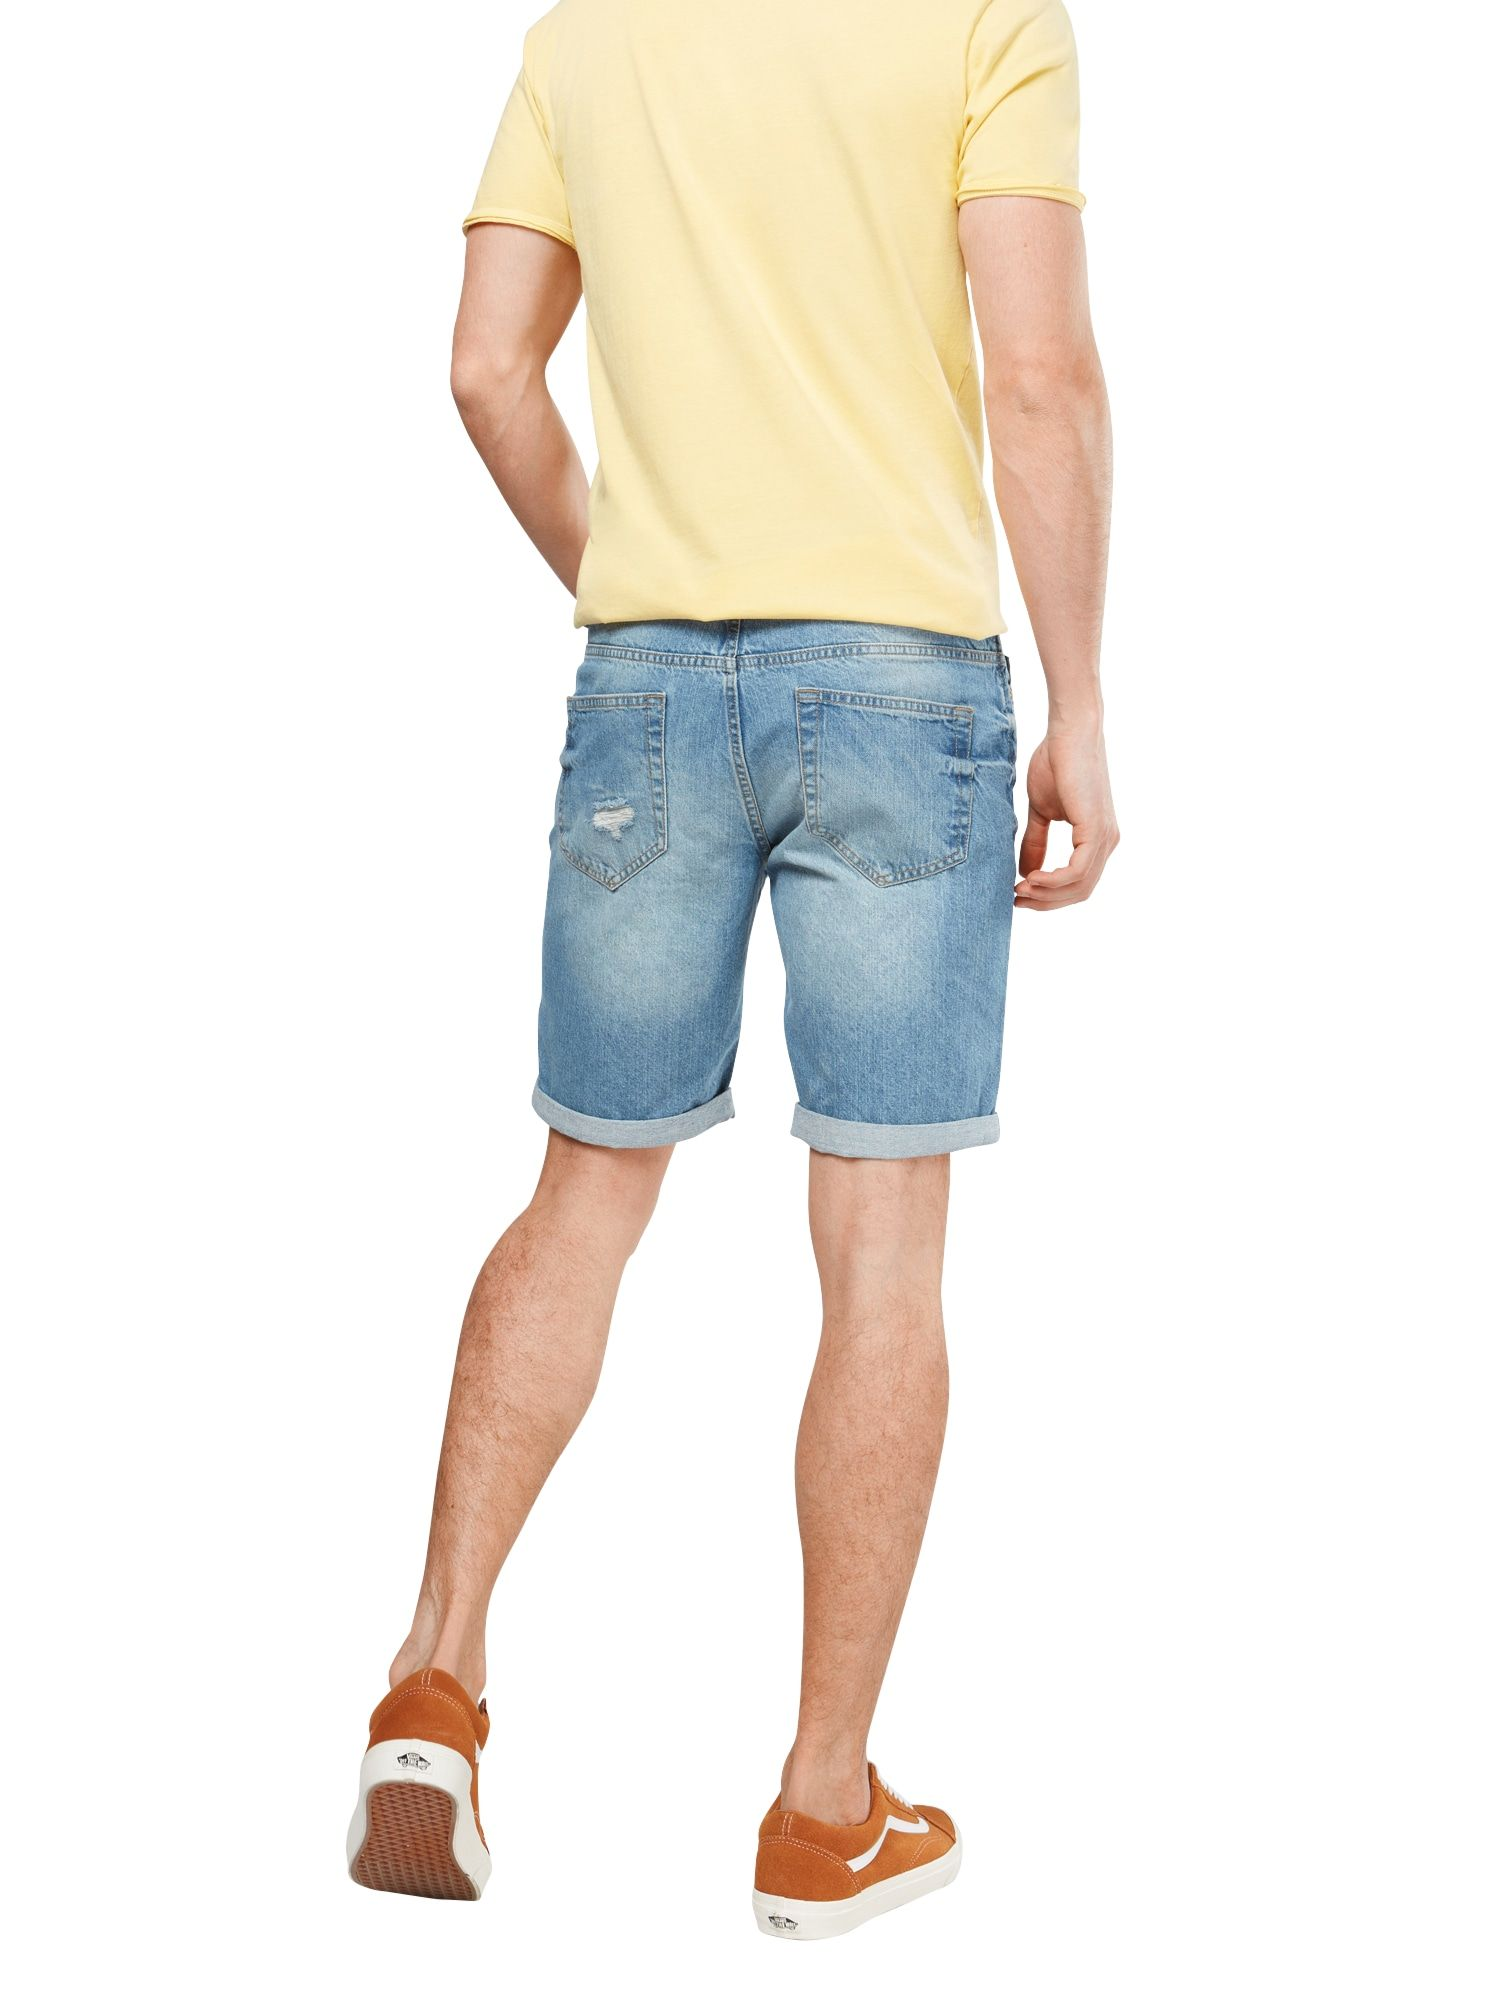 Only & Sons Jeans Shorts 'onsPLY SHORTS LIGHT BLUE PK 8614' Herren, Blue Denim, Größe 31 #lightblueshorts